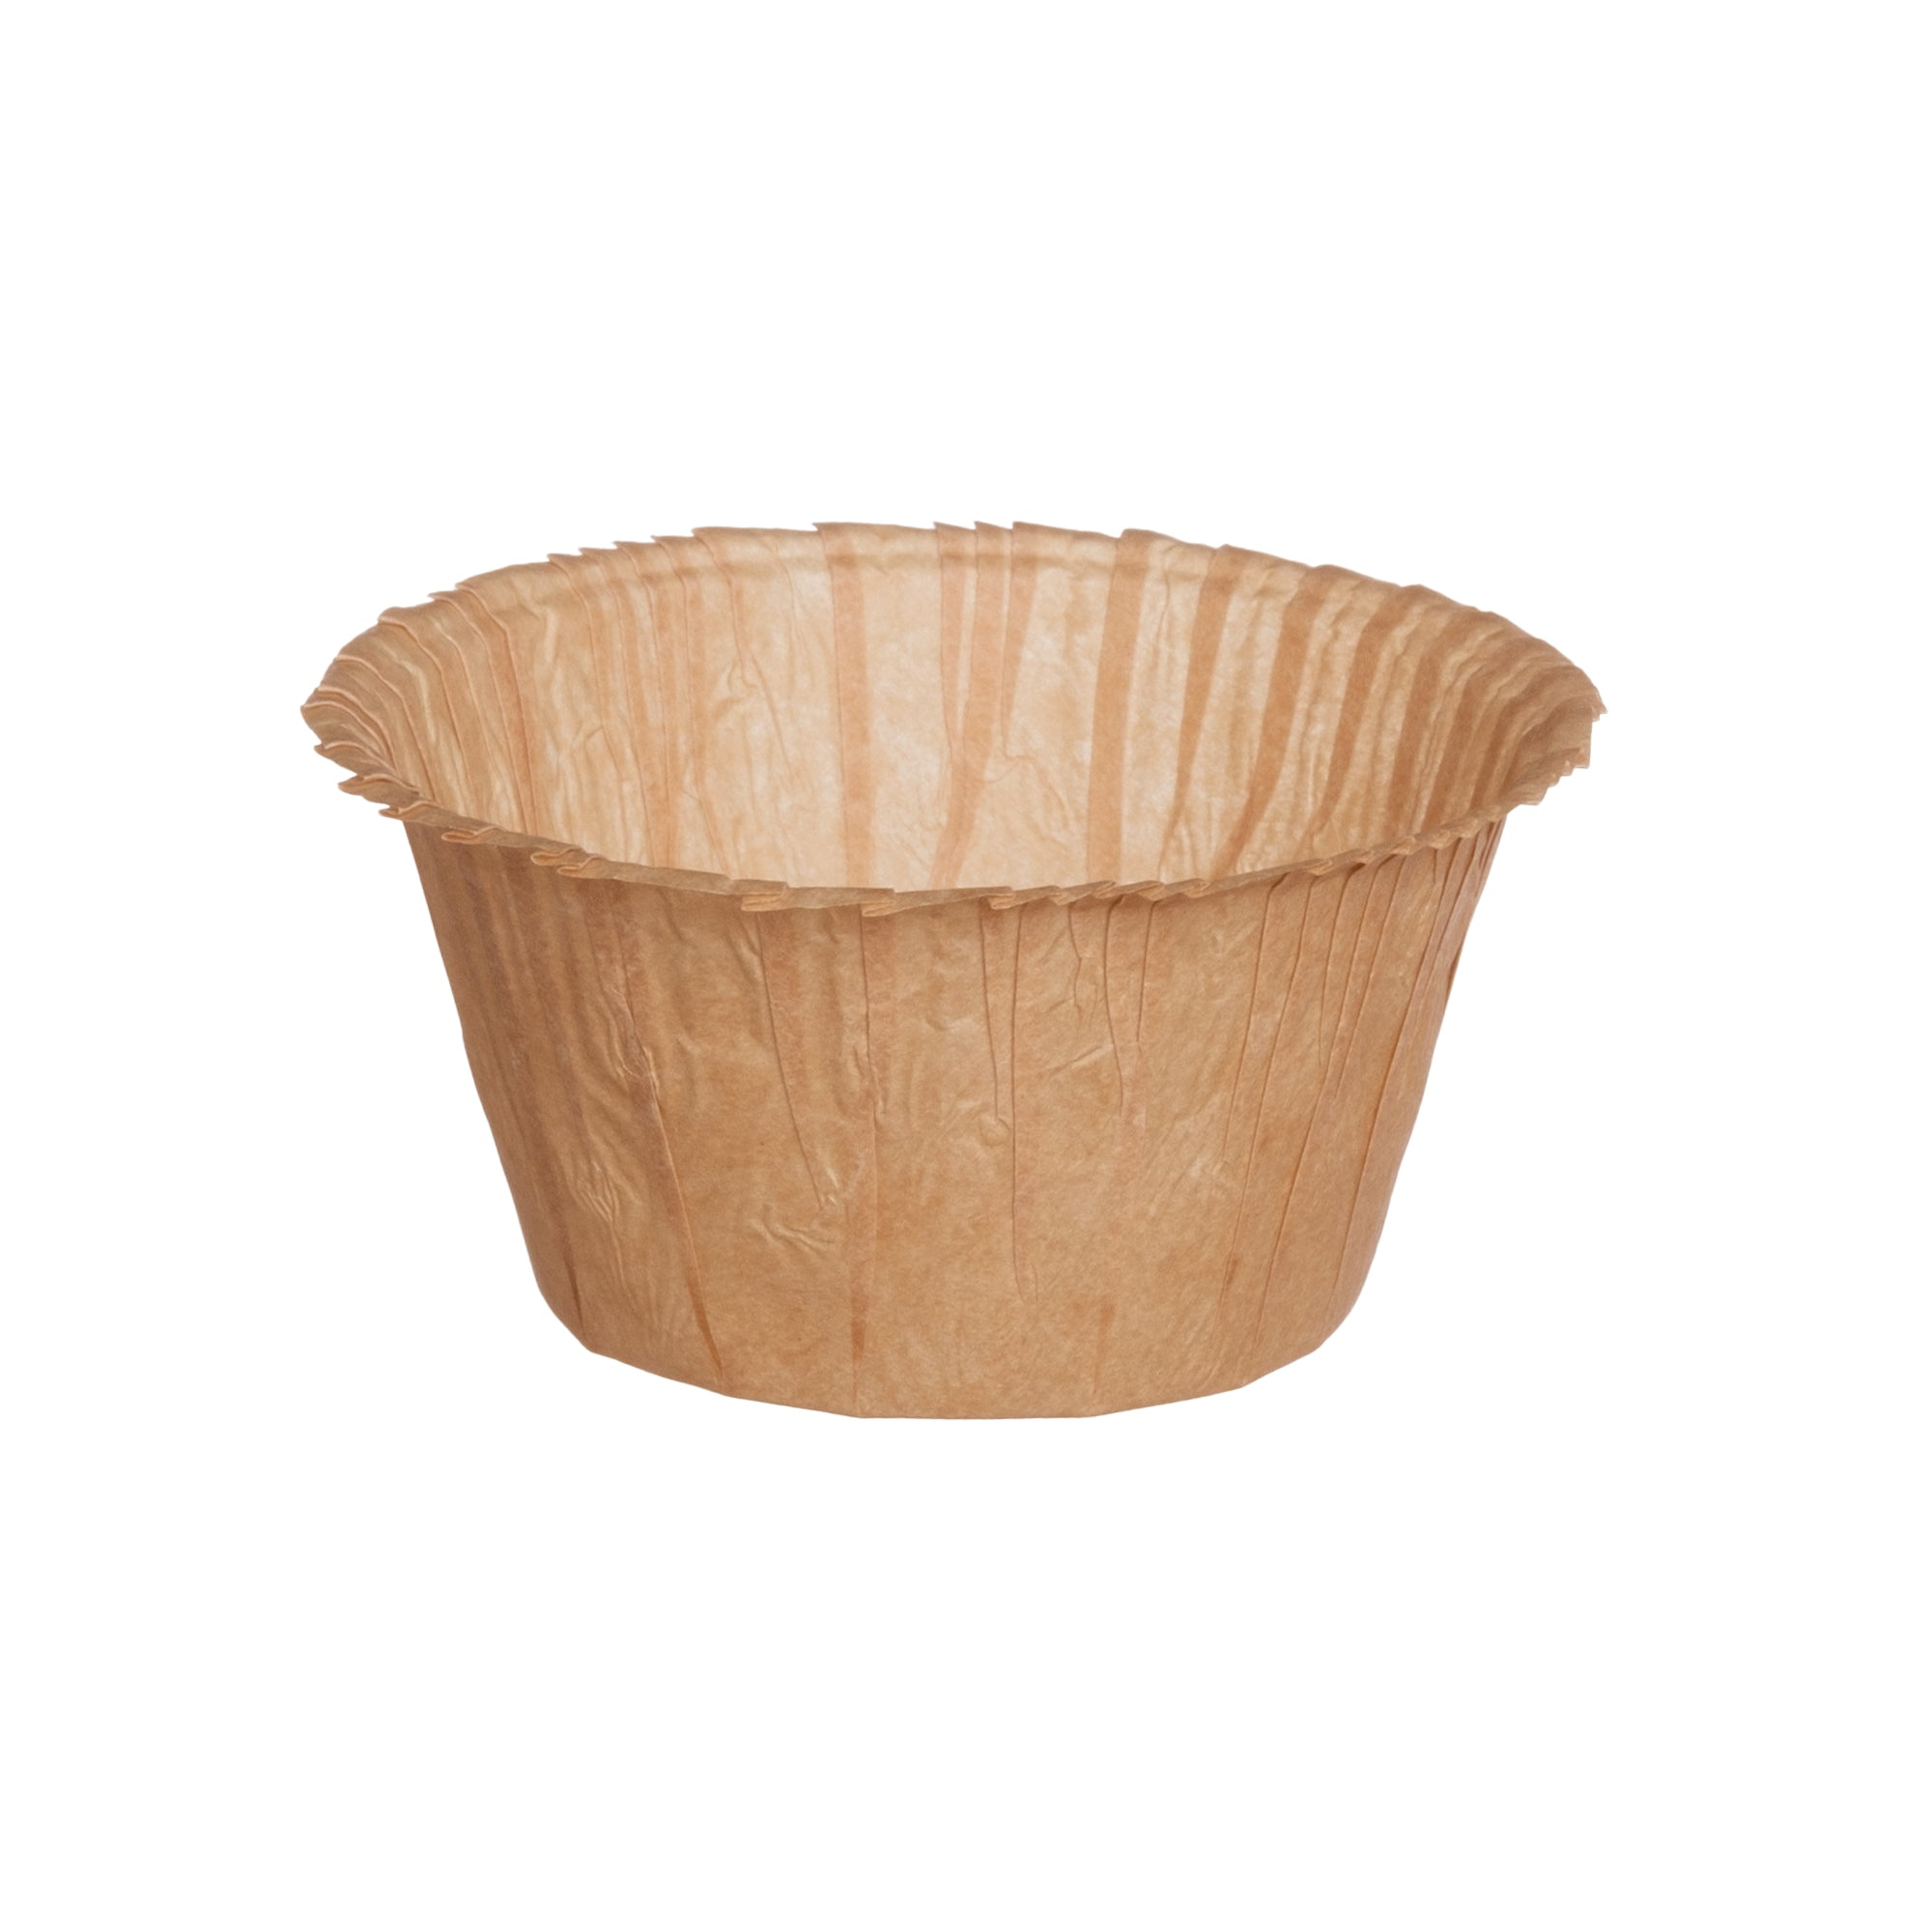 Muffin Baskets, 1001008 - Welcome Home Brands